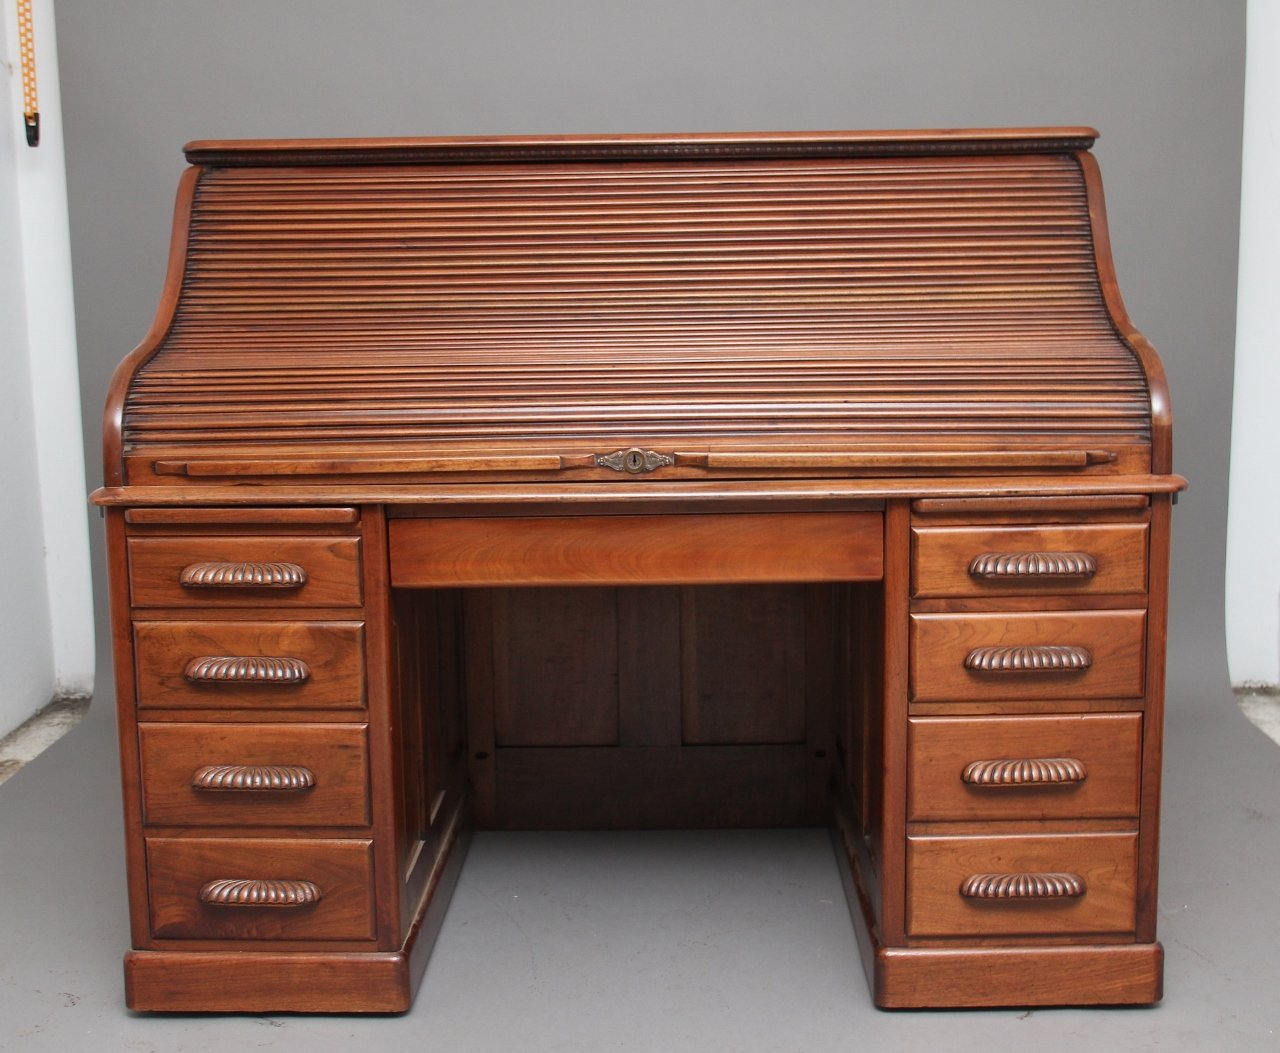 Antique Walnut Roll Top Desk, 1910s - Antique Walnut Roll Top Desk, 1910s For Sale At Pamono